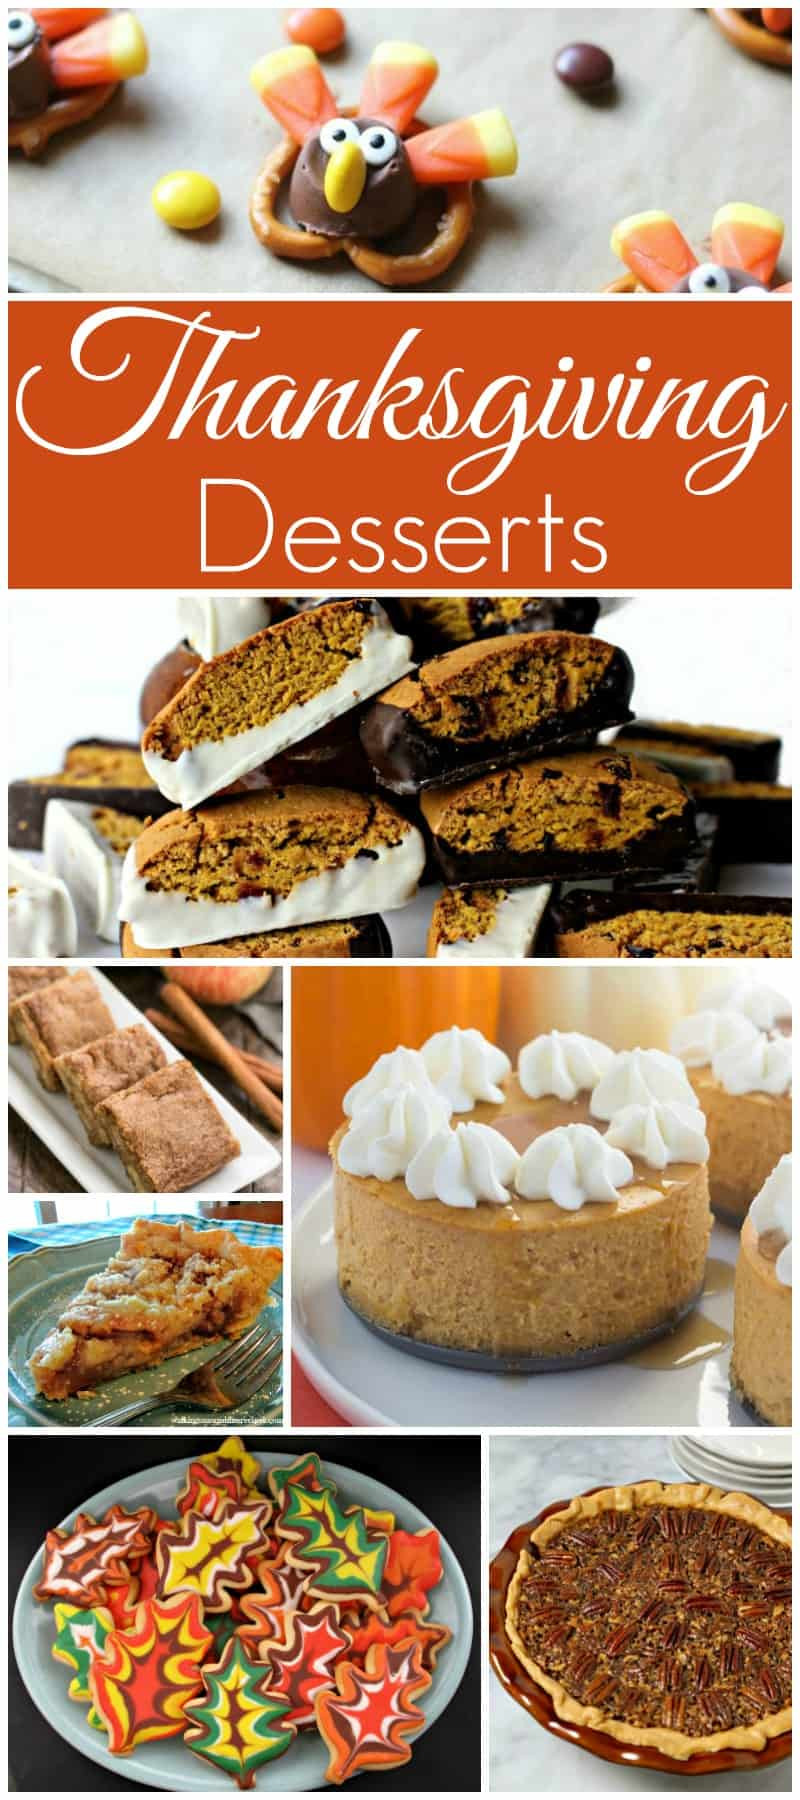 Thanksgiving Desserts Recipes  Thanksgiving Desserts and our Delicious Dishes Recipe Party